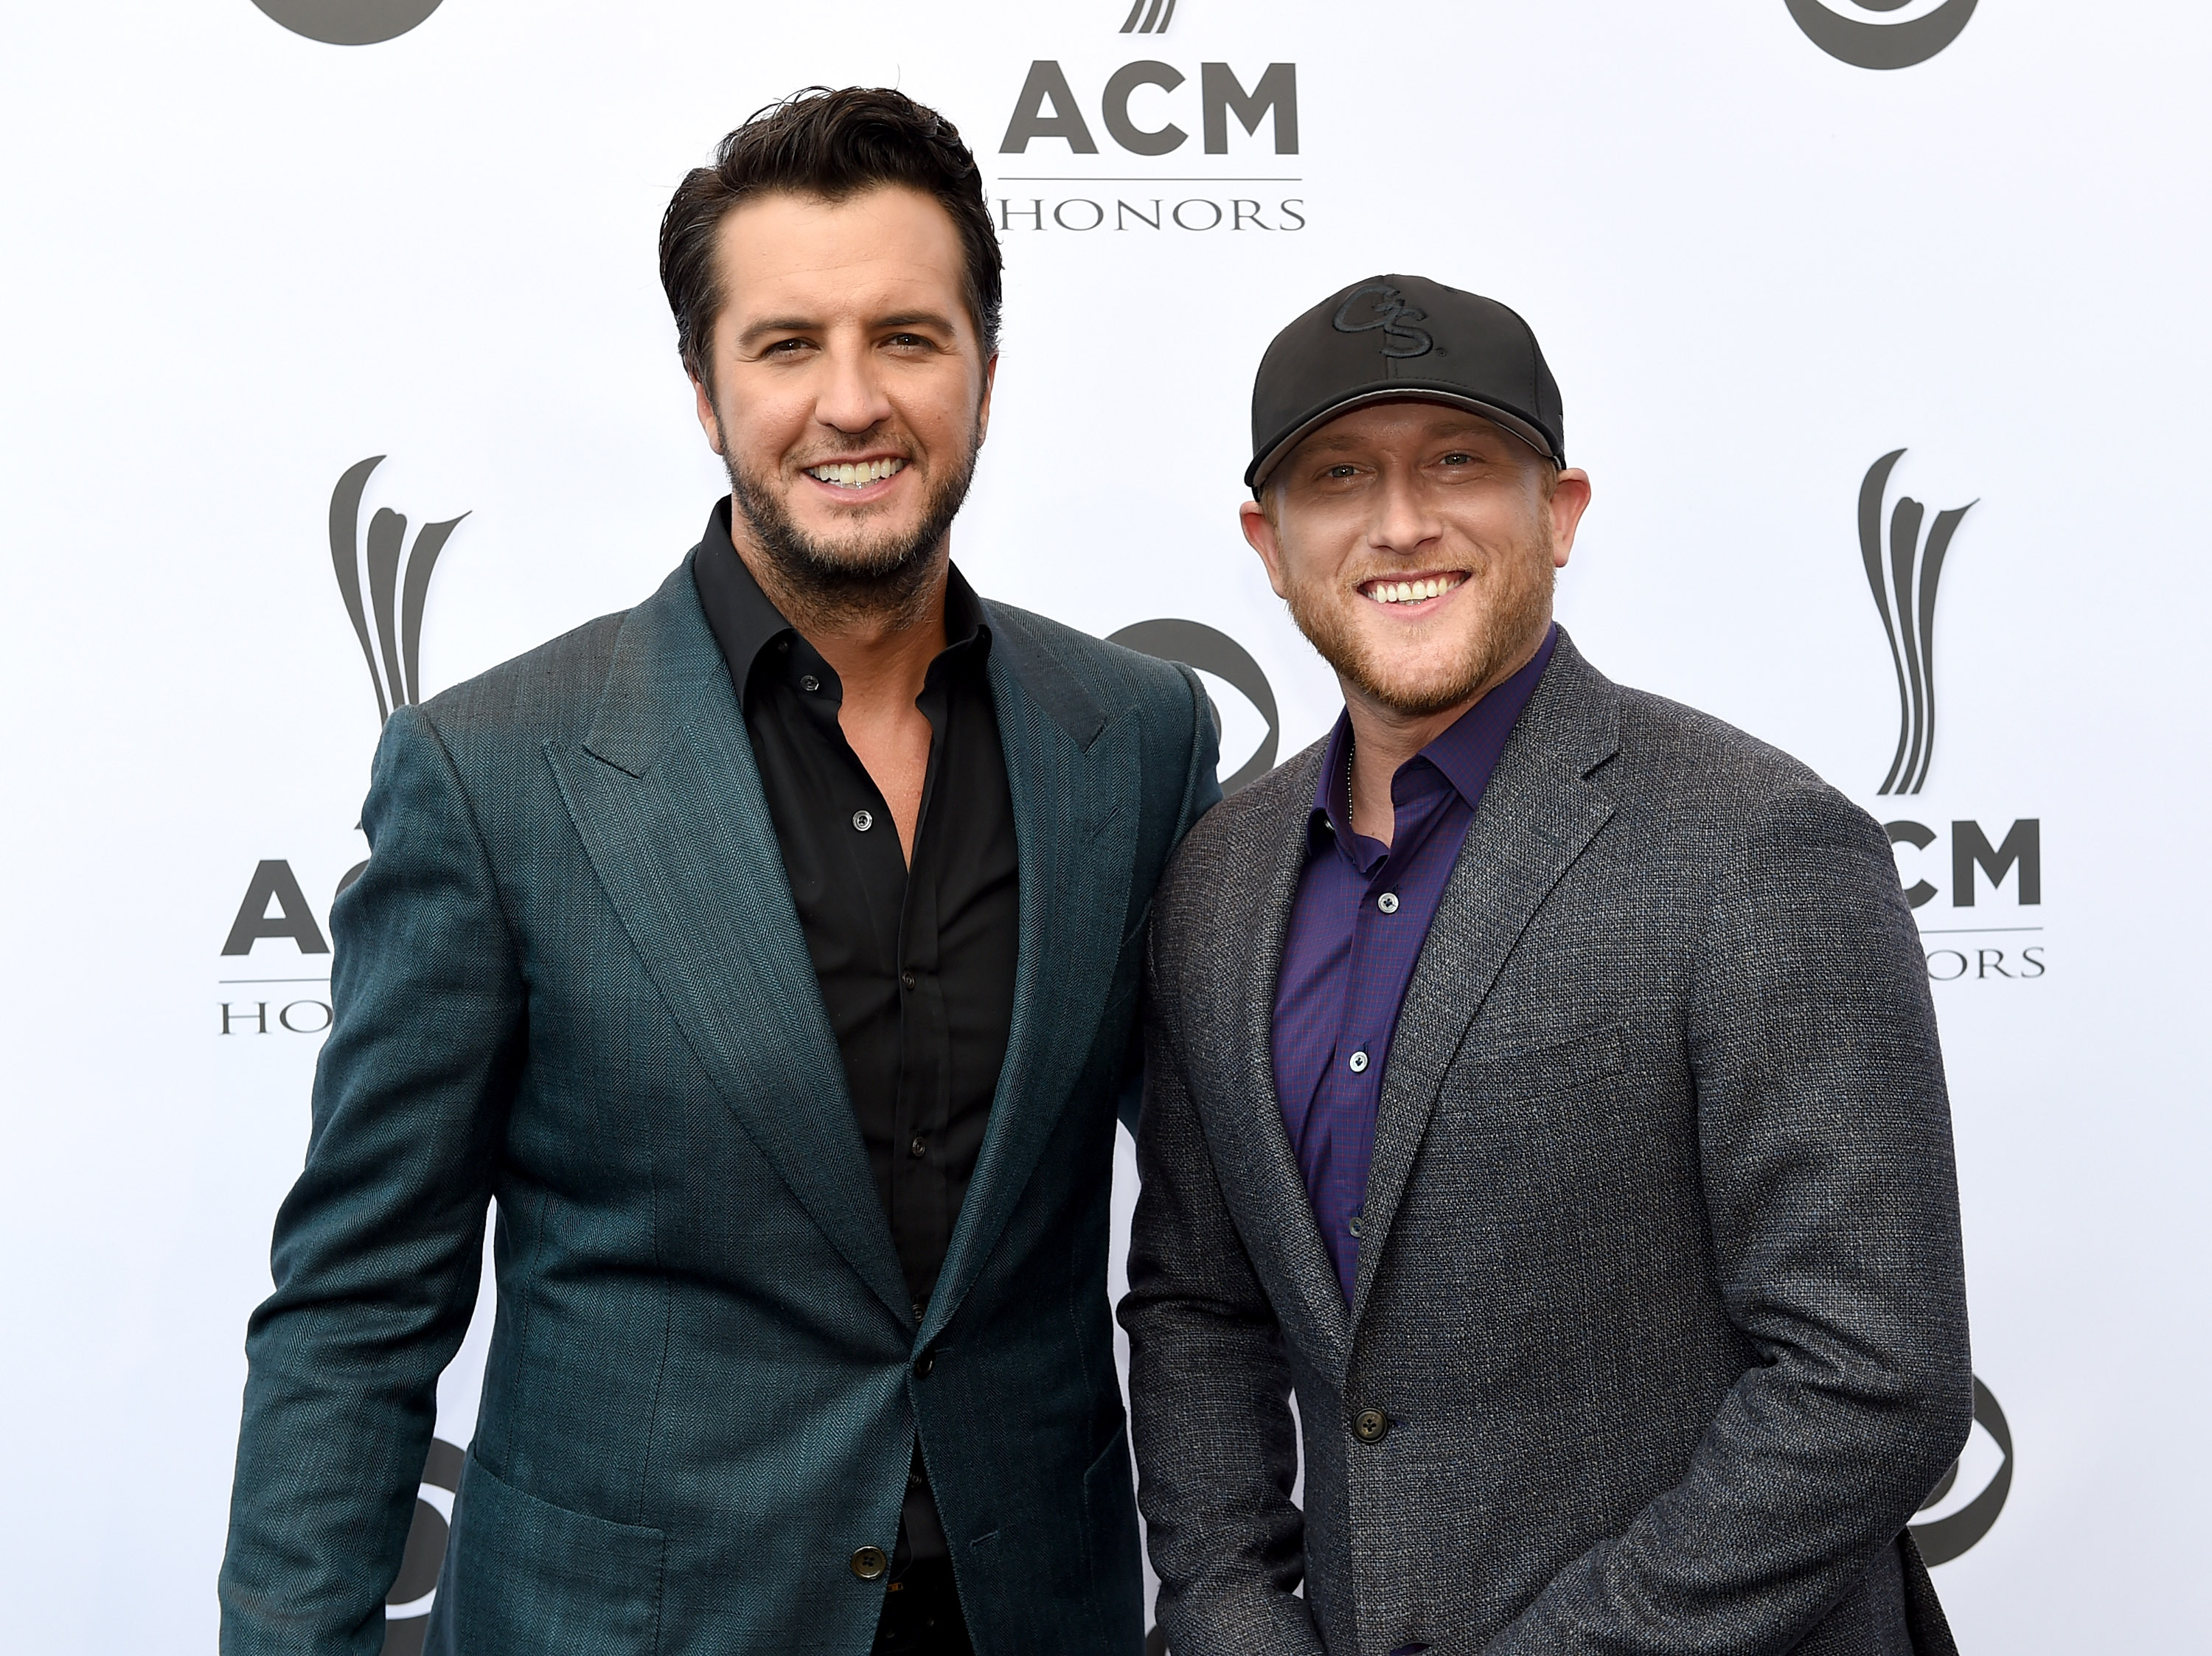 PHOTOS: 10th Annual ACM Honors – Red Carpet Arrivals